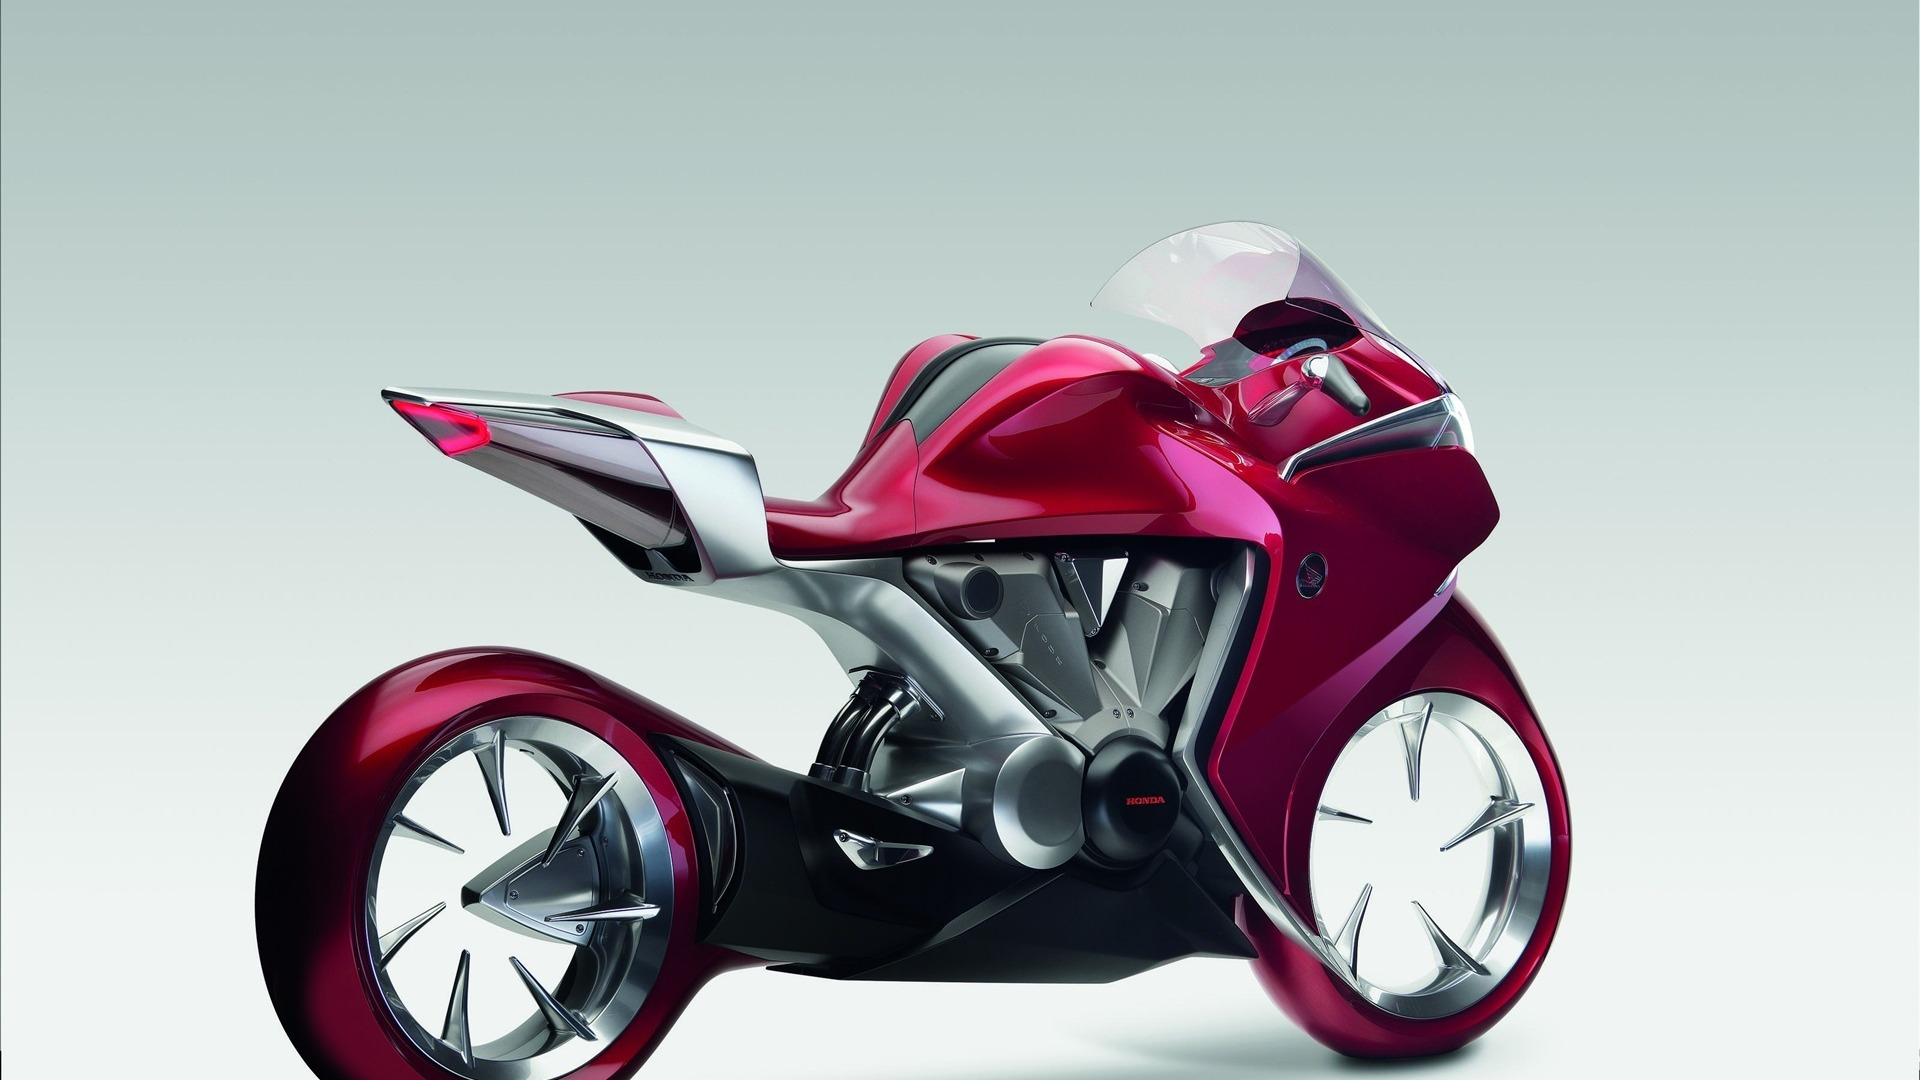 Cool HD Pink Motorcycle